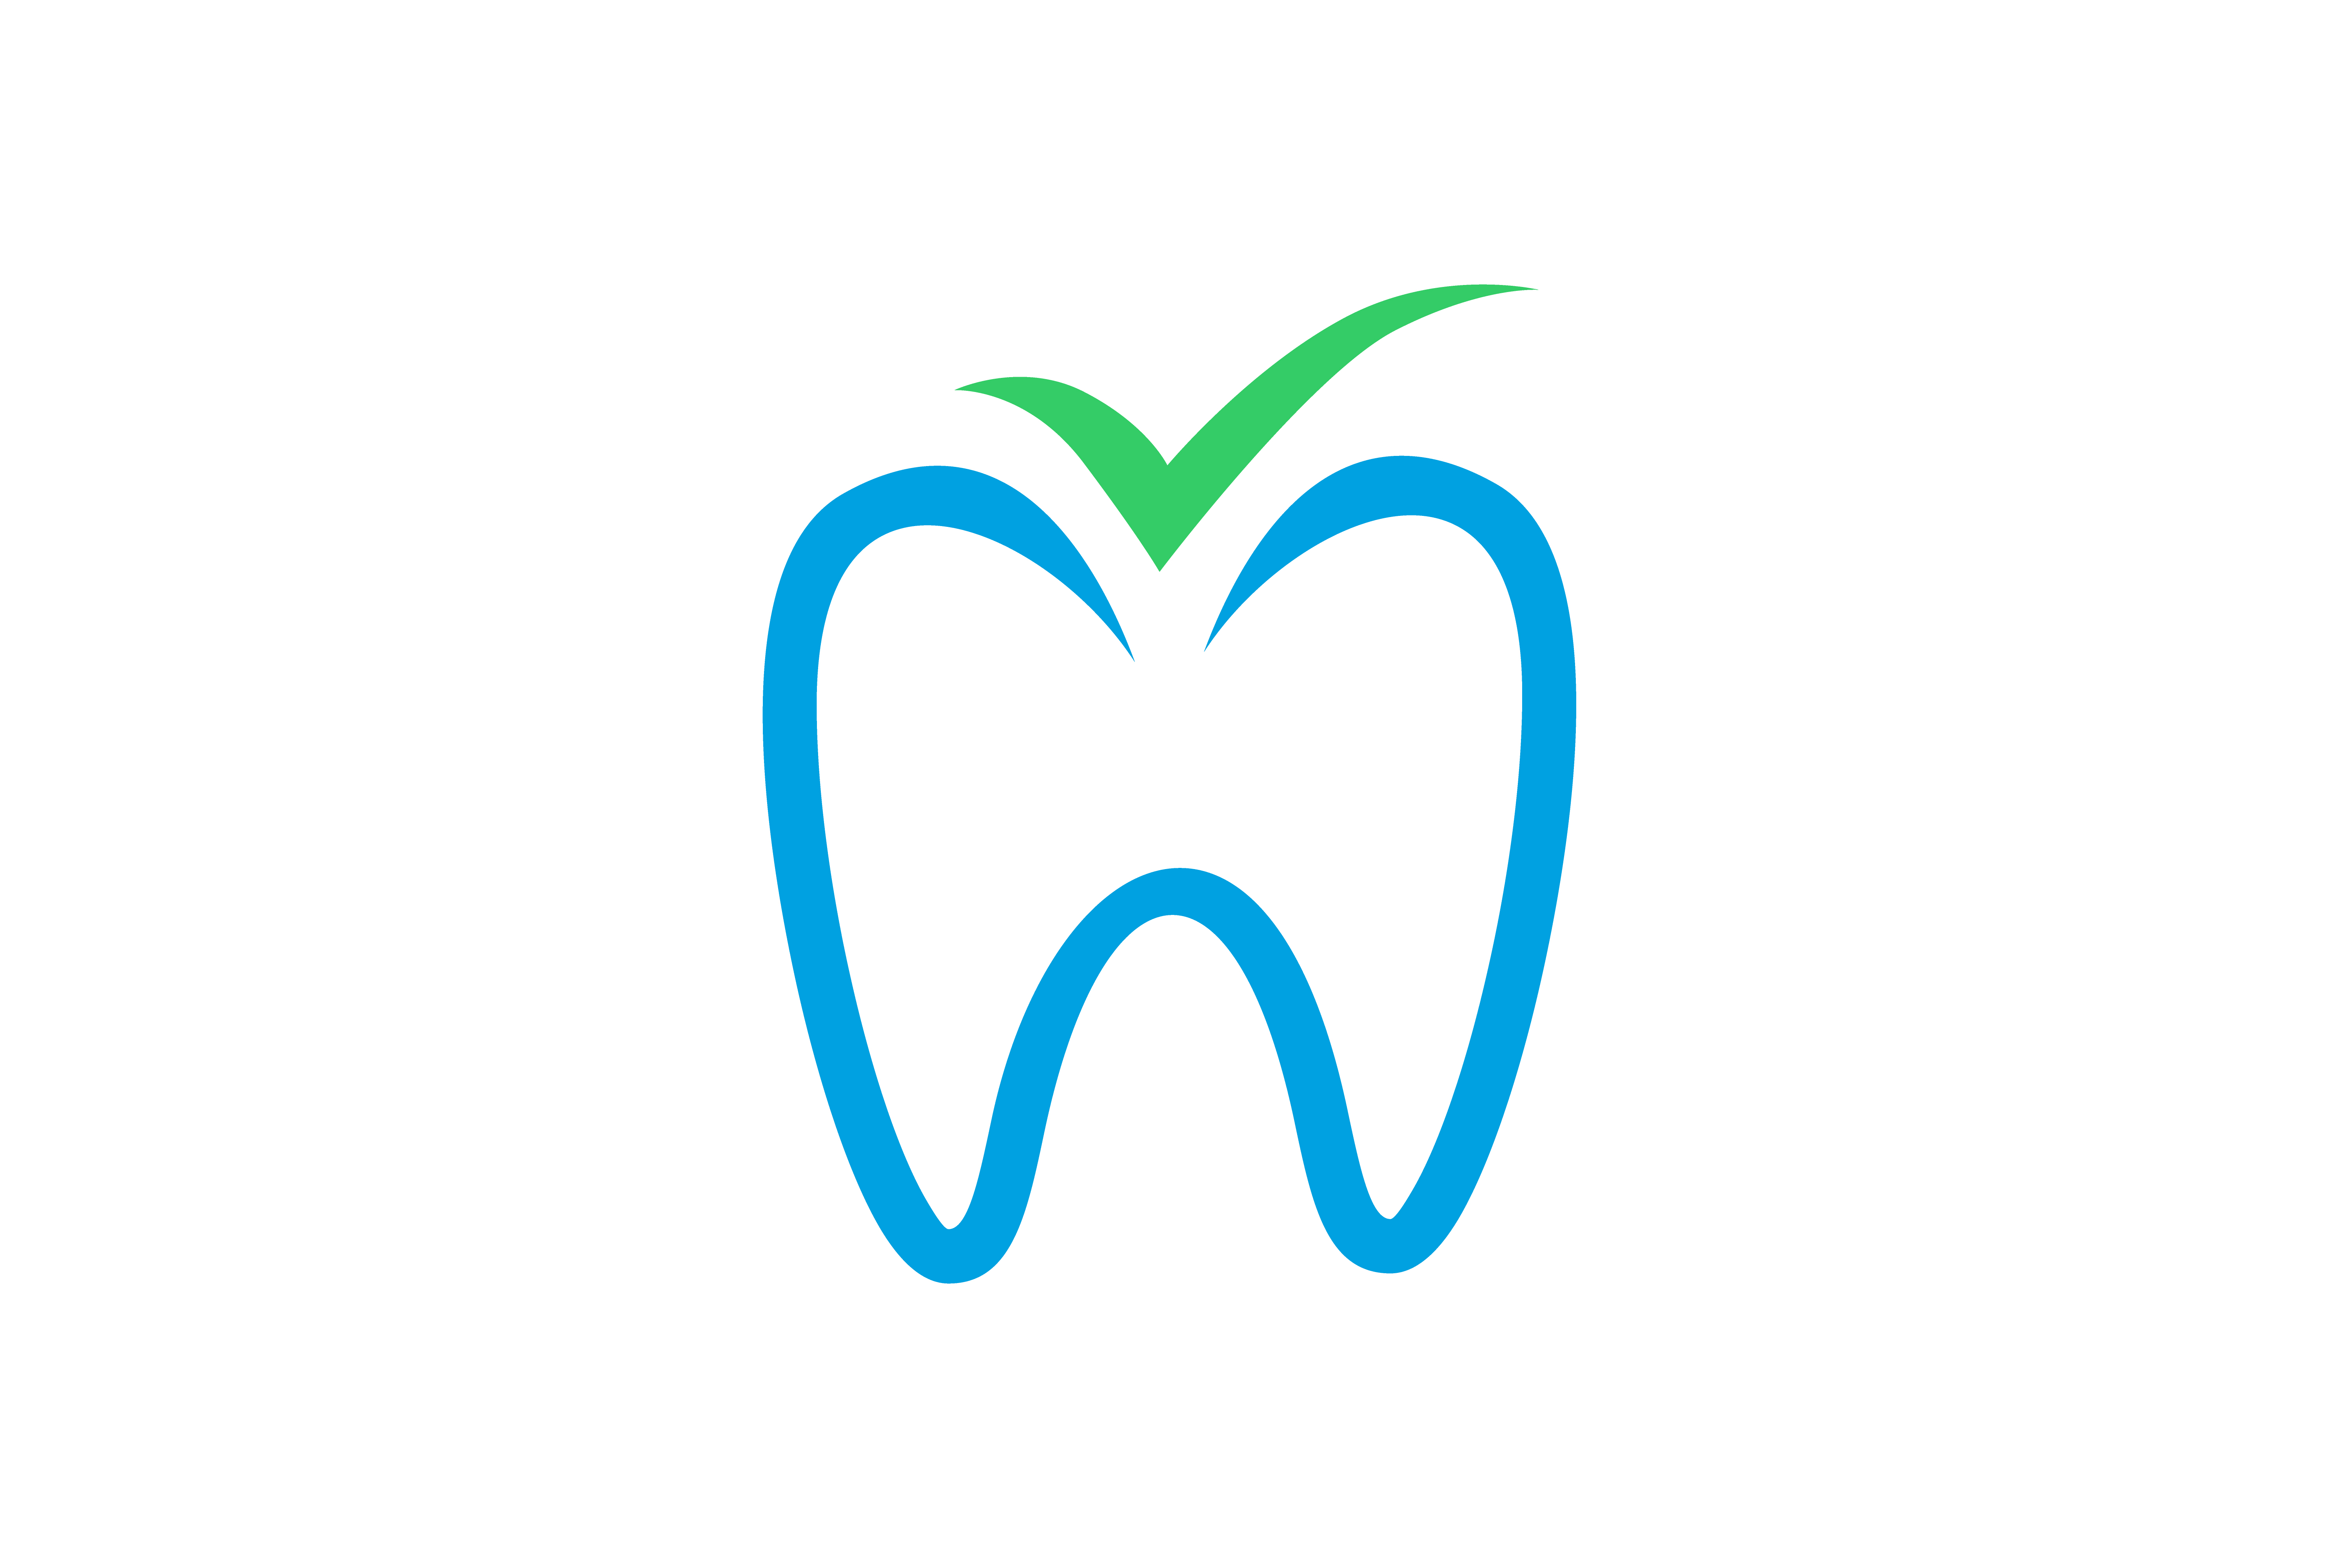 Download Free Dental With Approval Mark On Above Graphic By Depadepi for Cricut Explore, Silhouette and other cutting machines.